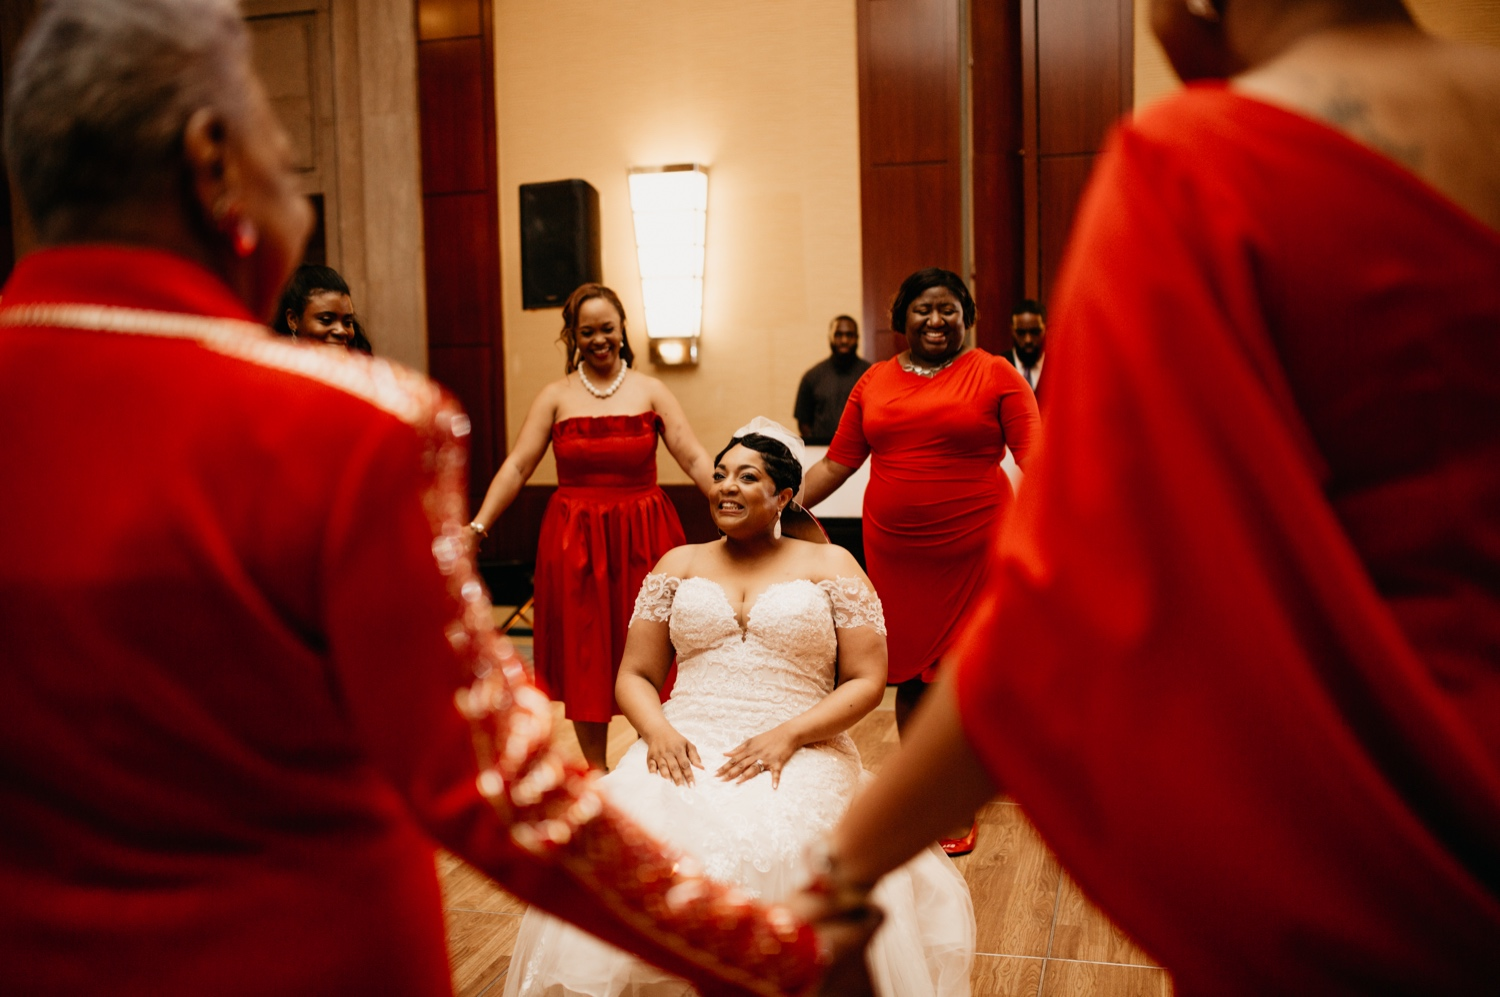 72_Ritz-carlton-wedding_charlotteNC_charlotteweddingphotographer.jpg